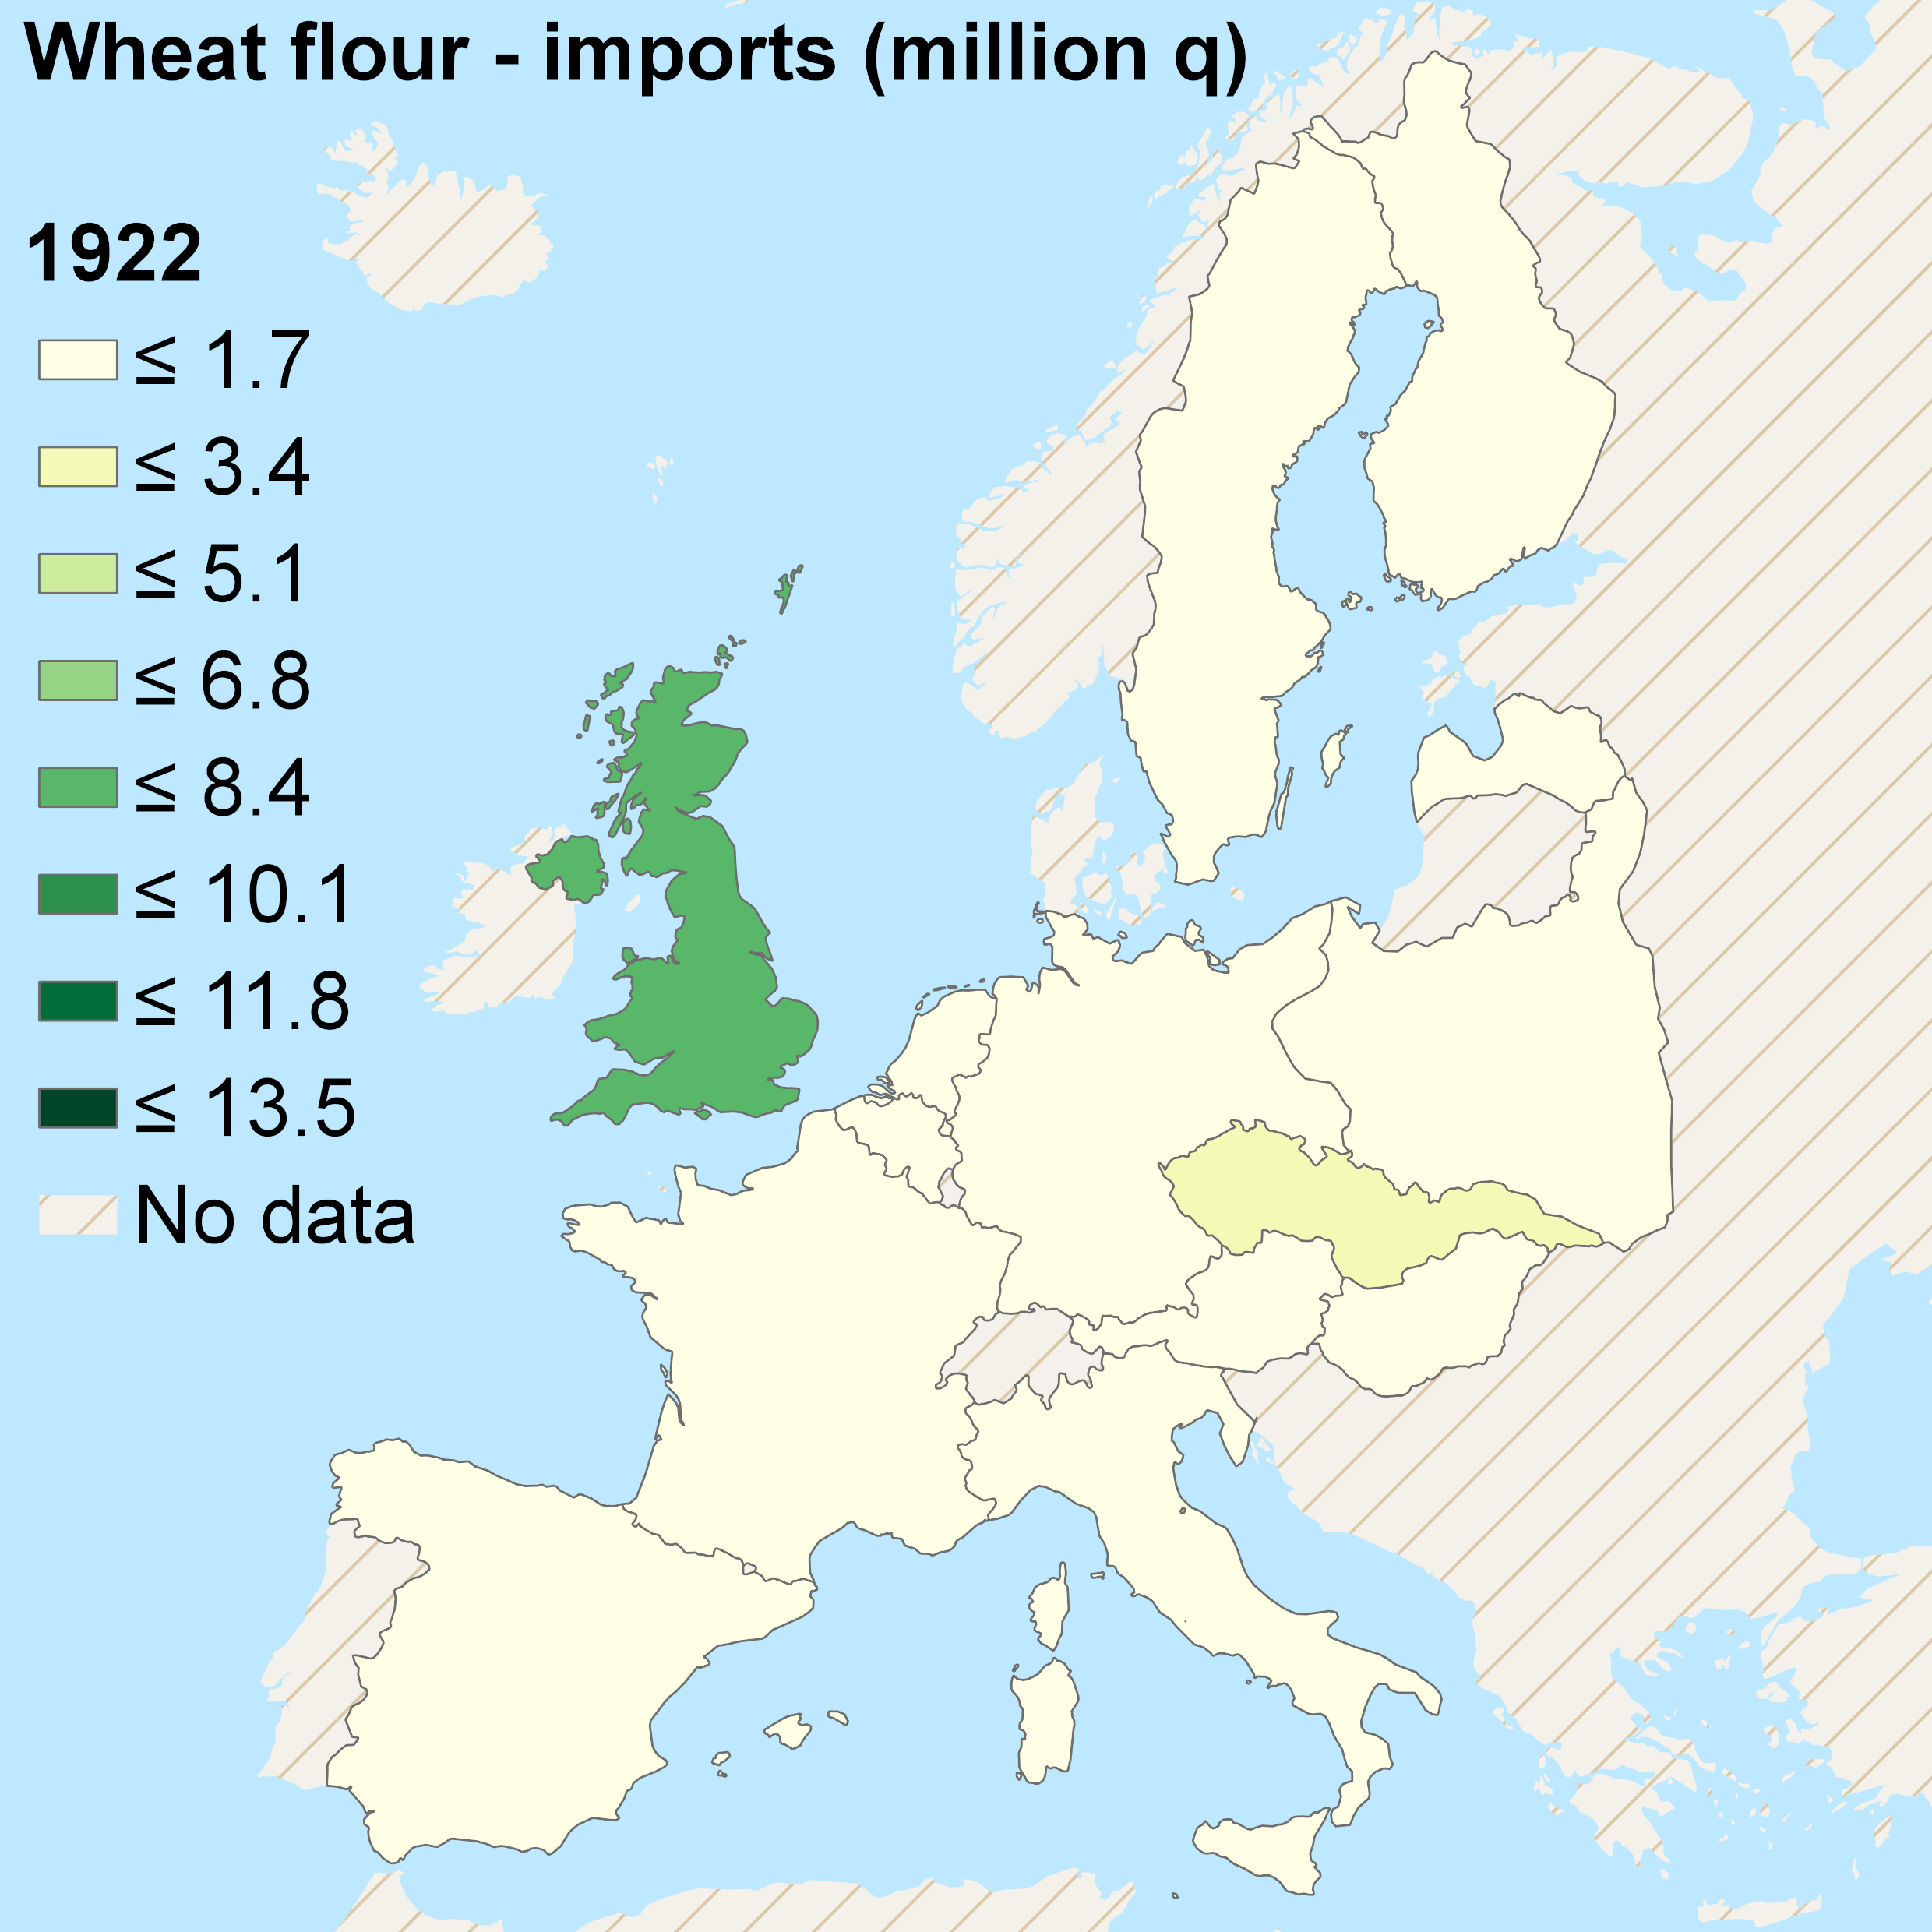 wheat-flour-imports-1922-v2